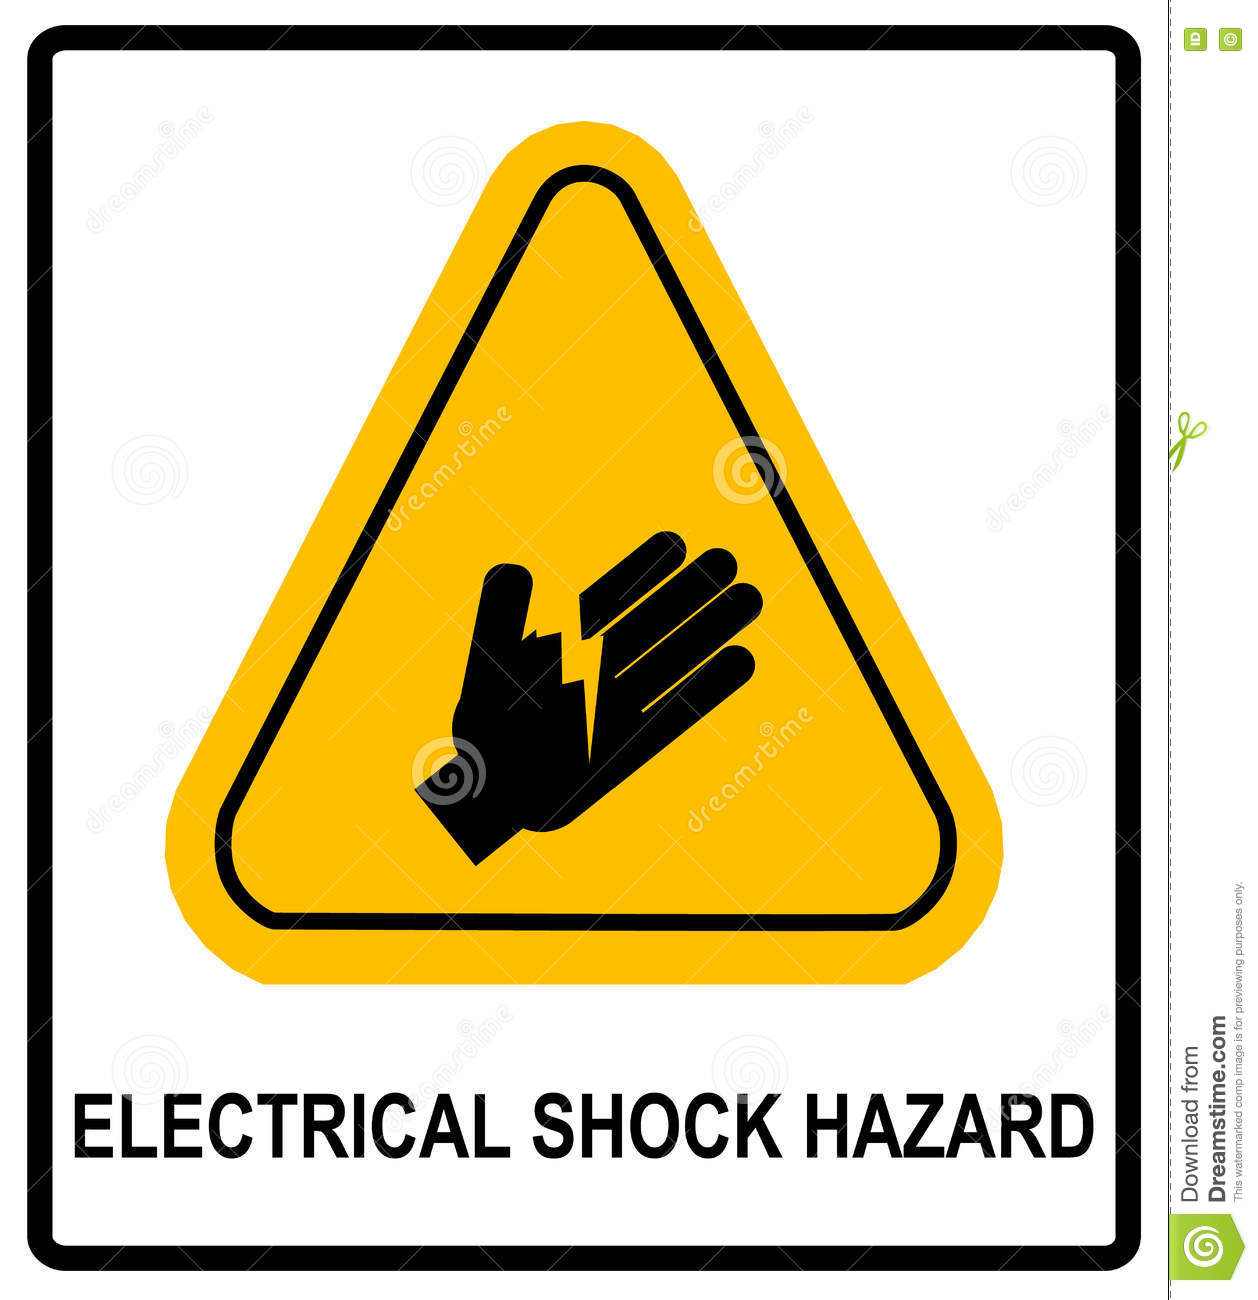 Electrical Shock Hazard Symbol Vector Illustration With Warning